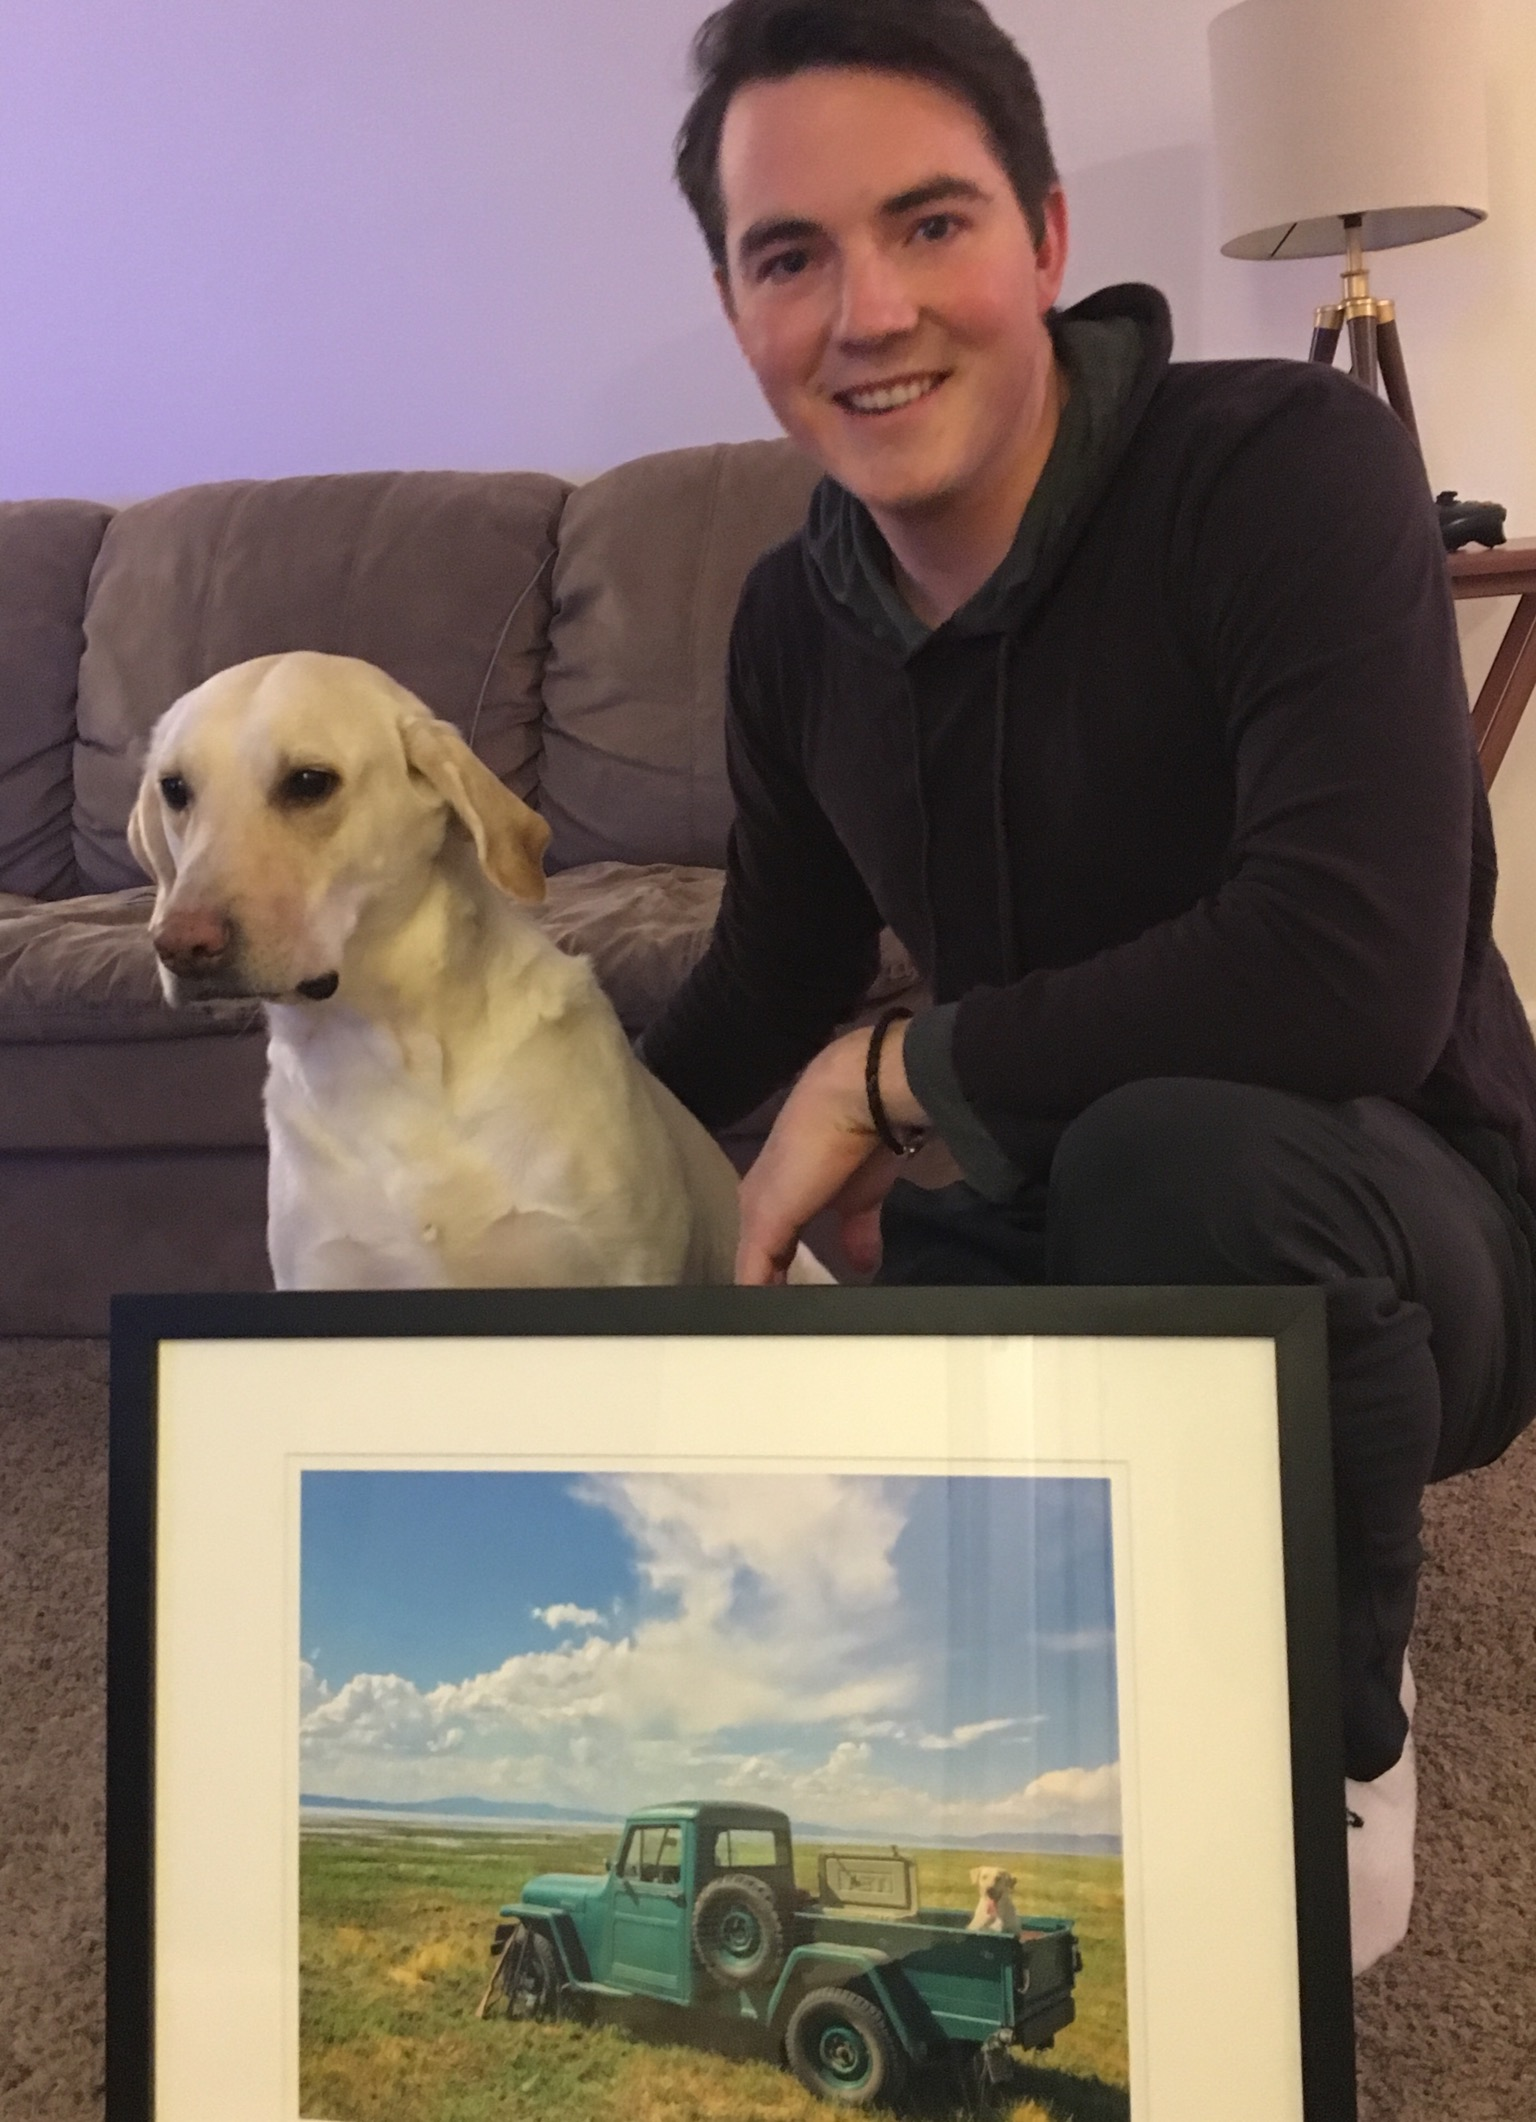 The photographer and his model, Stetson, with his framed print (photo by Carolyn Fluehr)